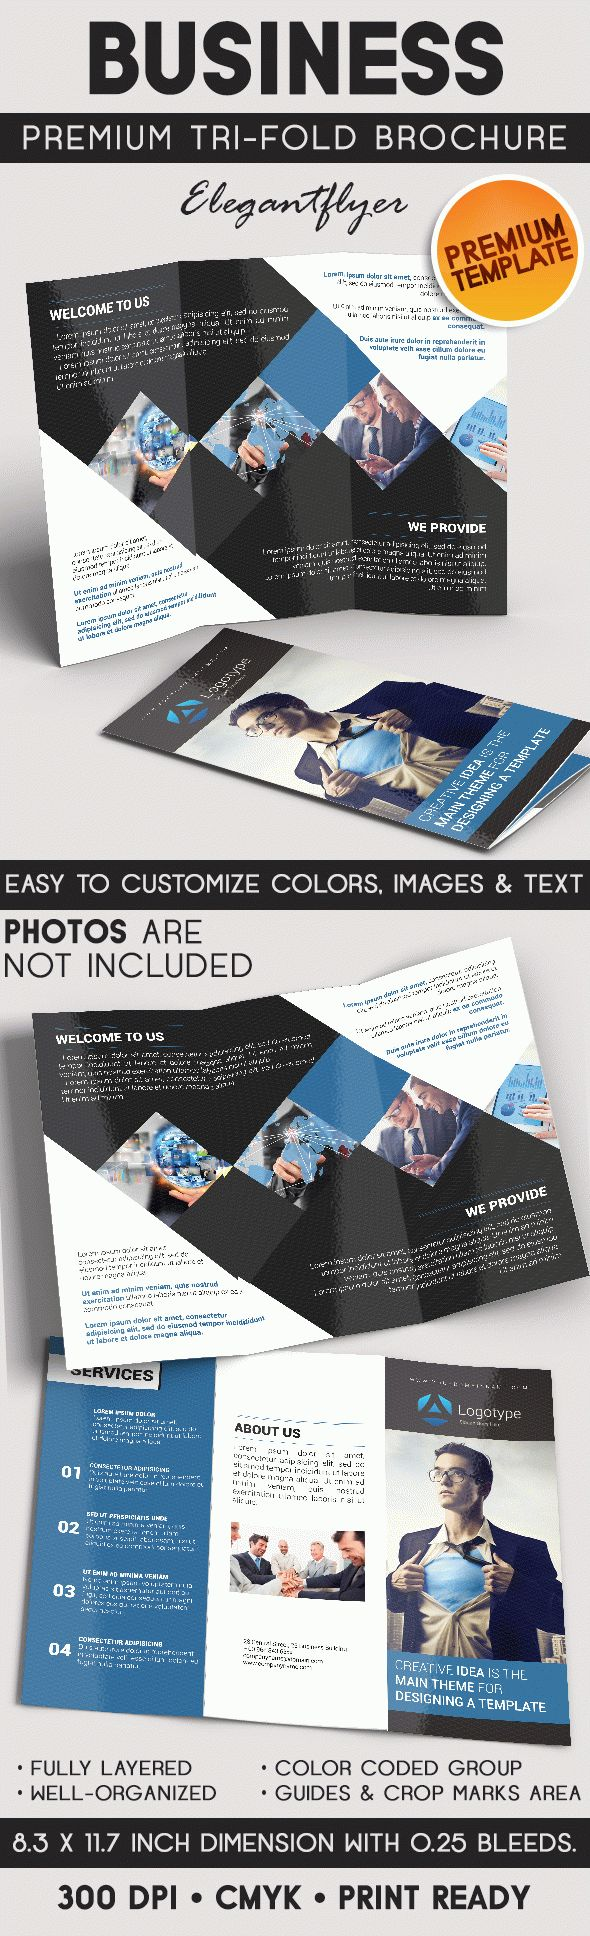 Business brochure tri fold brochure psd template by for Tri fold brochure template psd